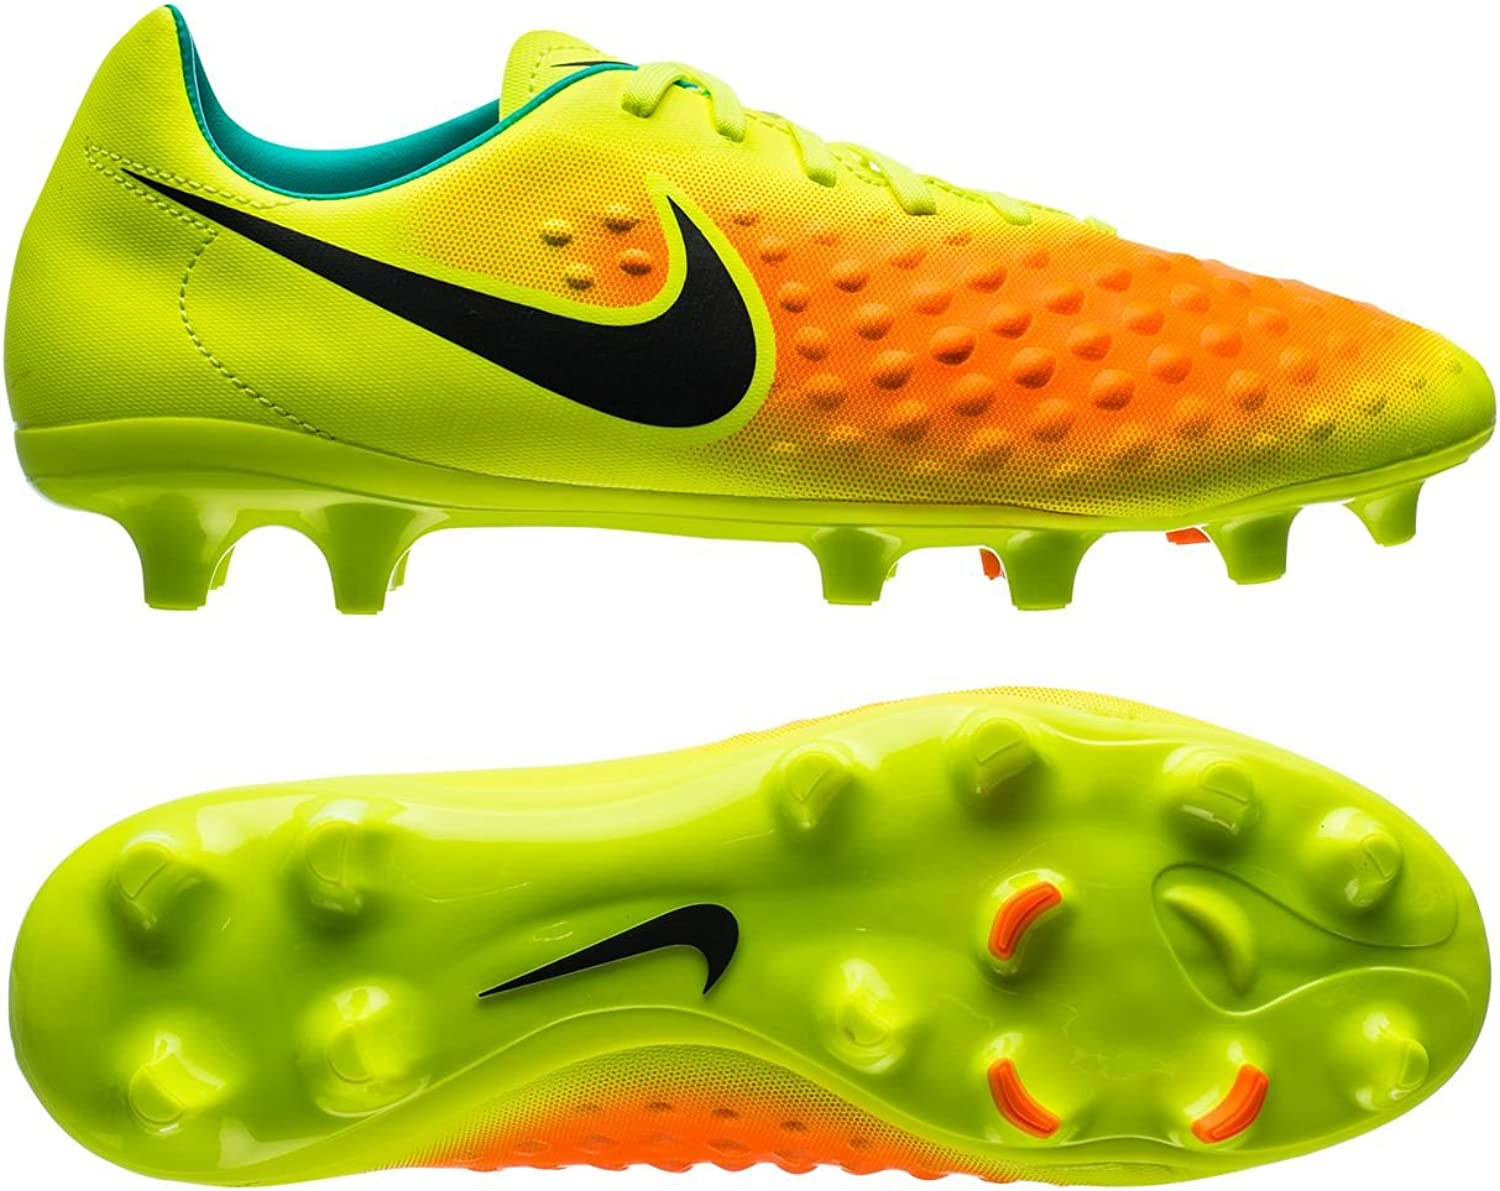 Nike Football shoes Magista Onda II FG